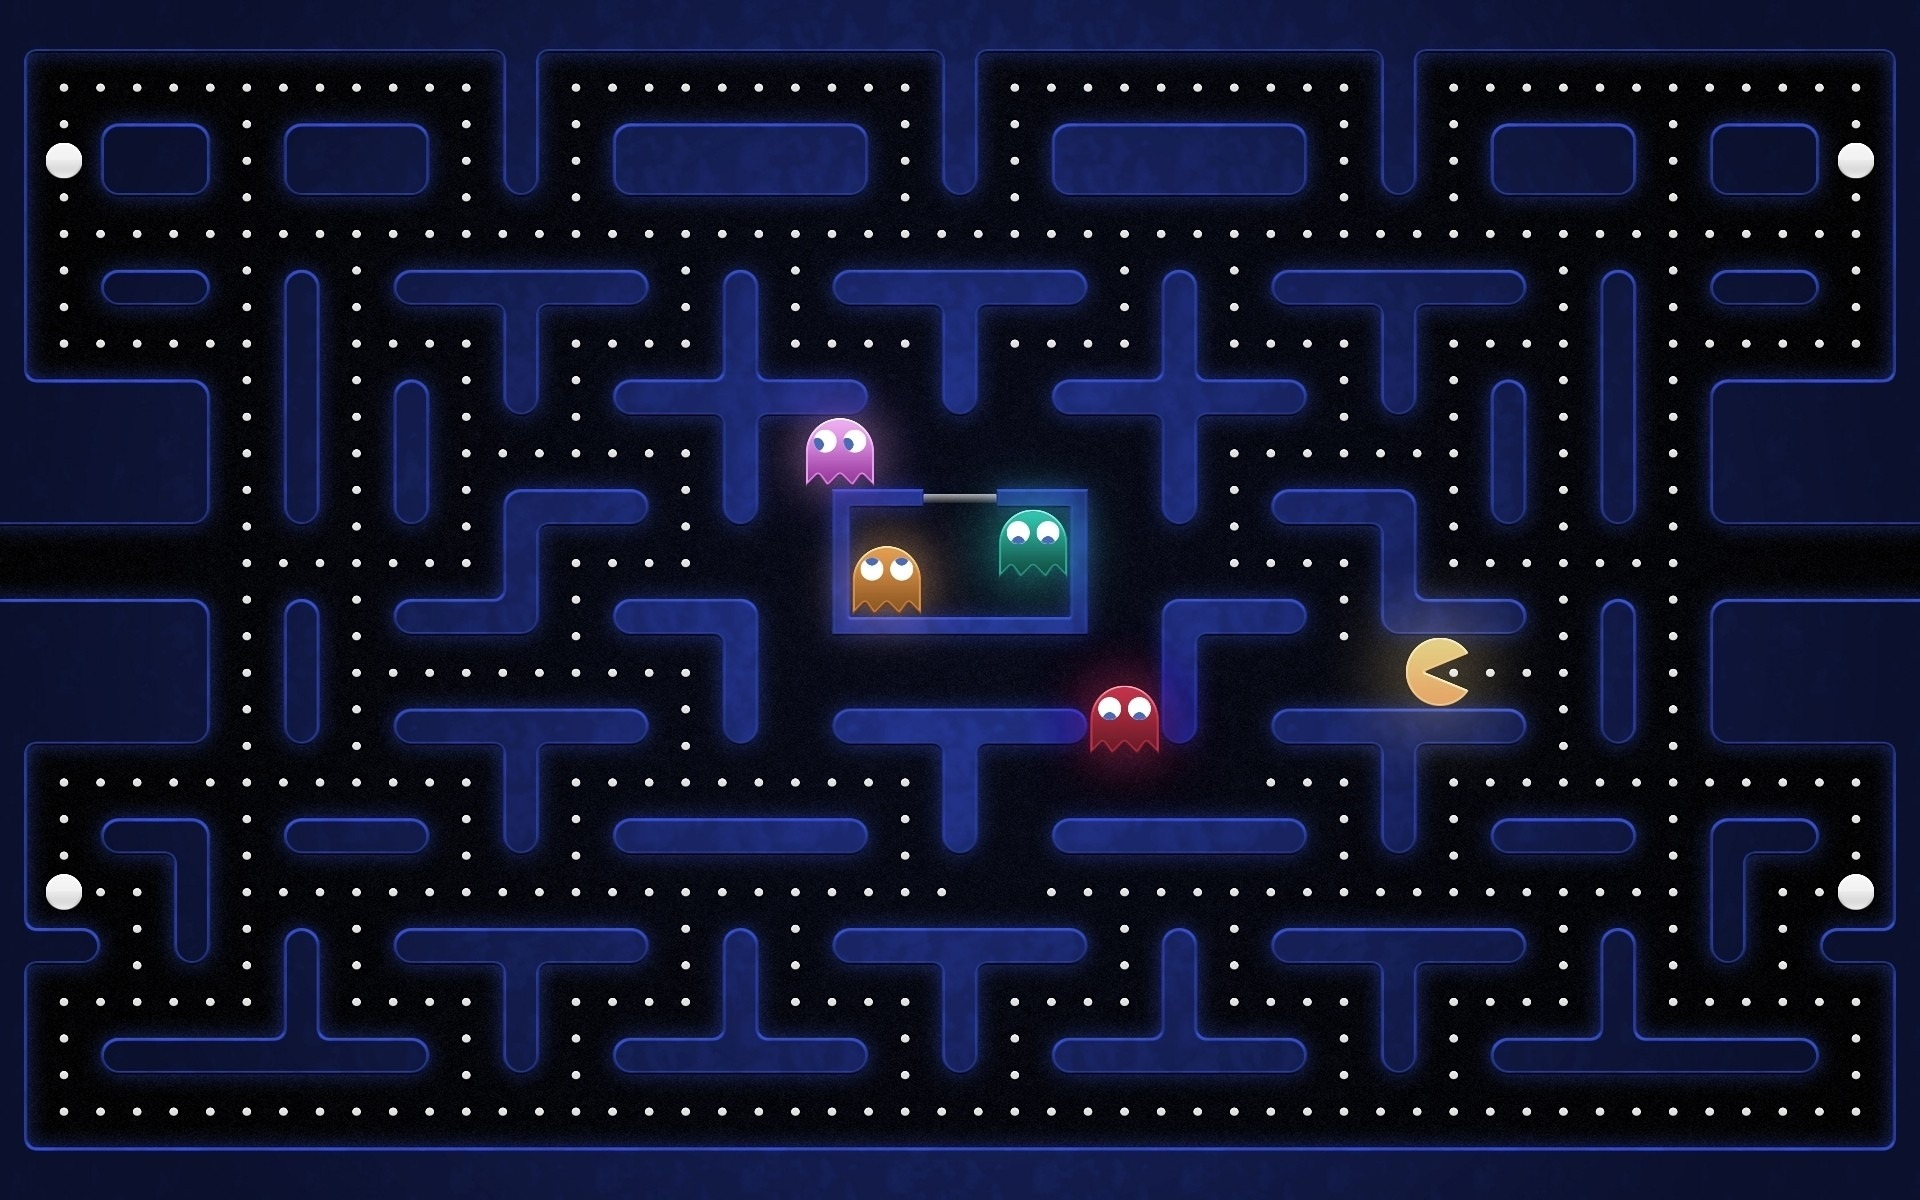 images of pacman